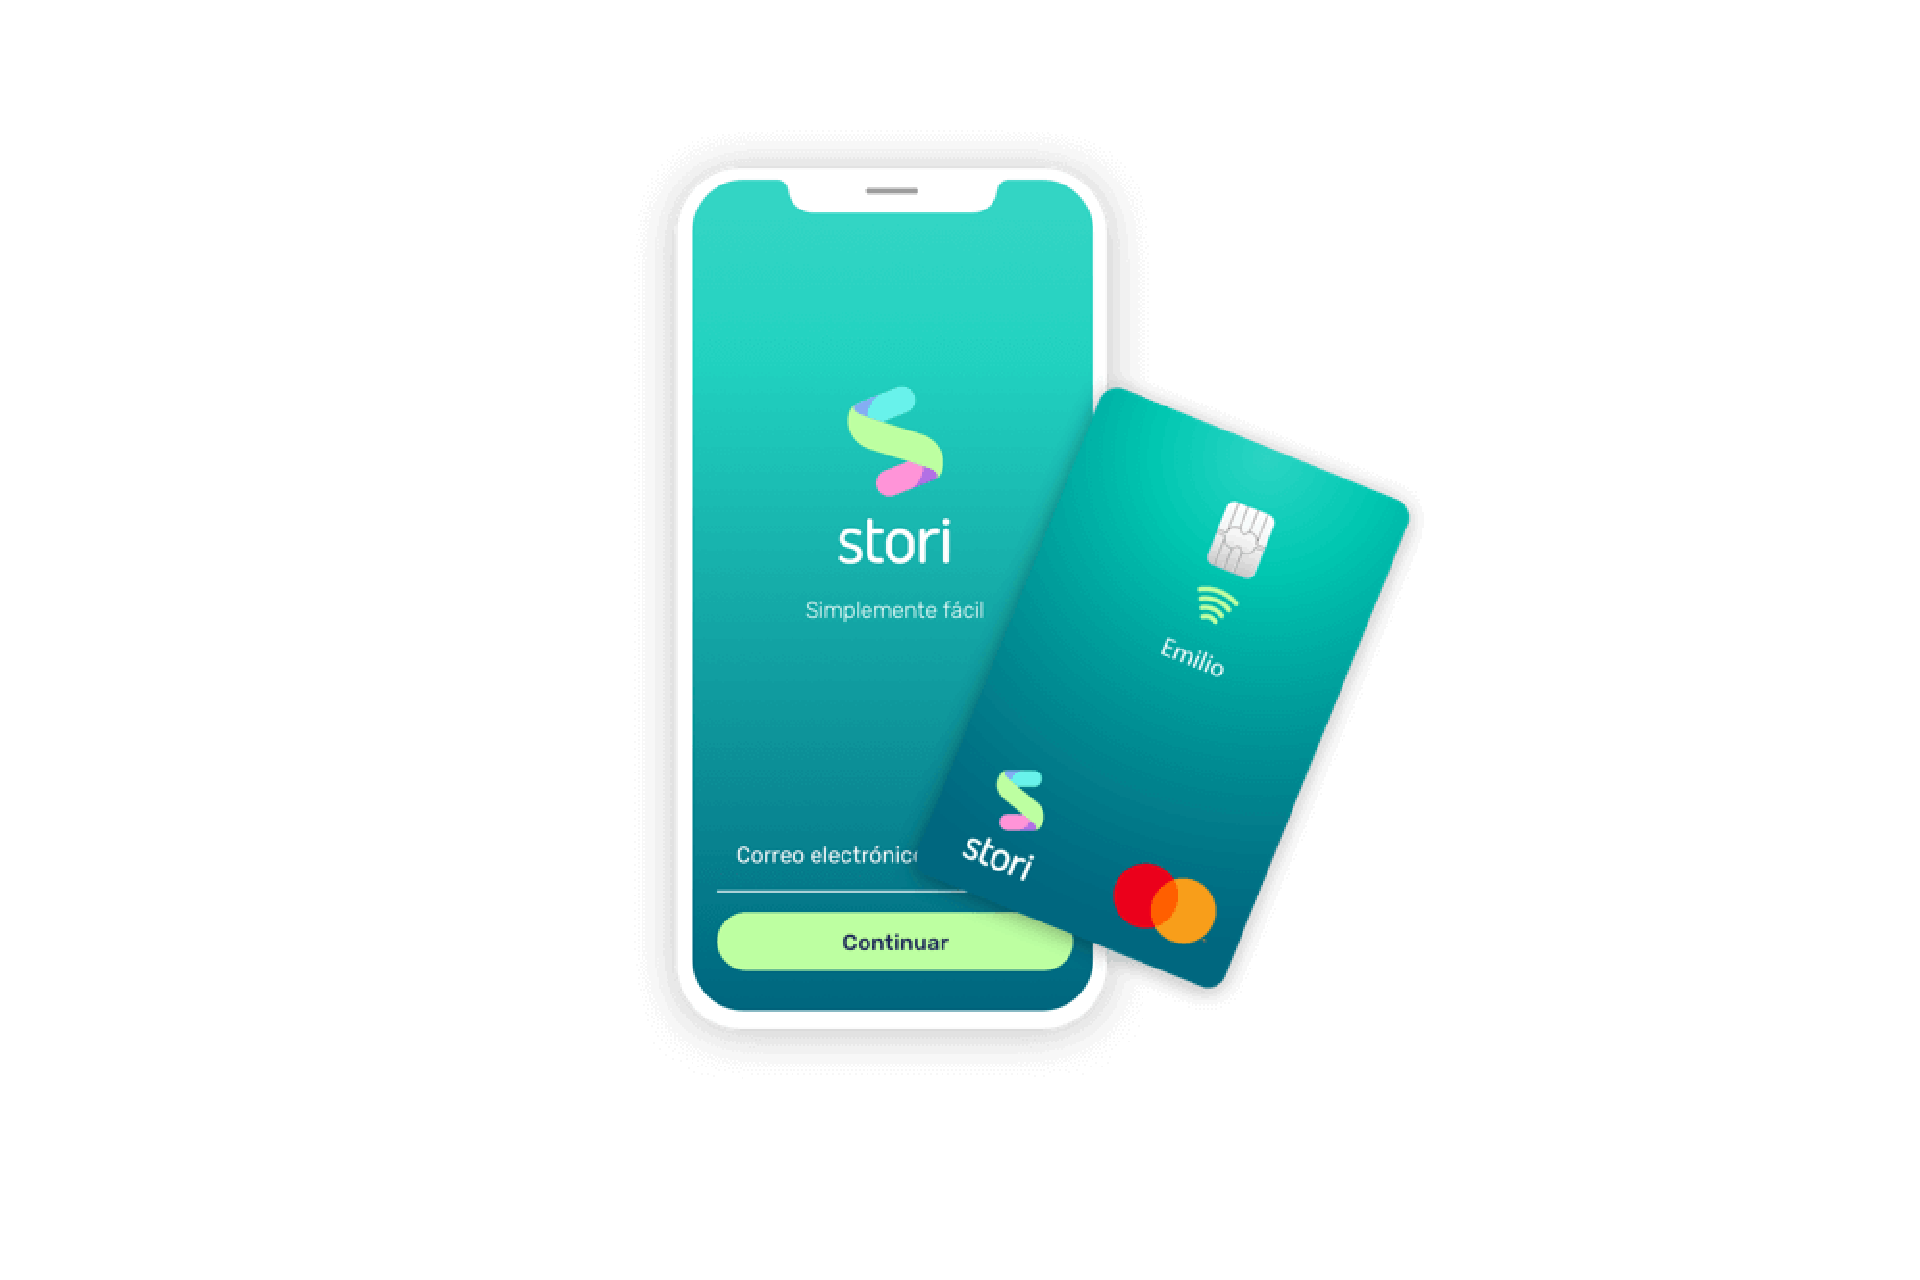 stori app and credit card